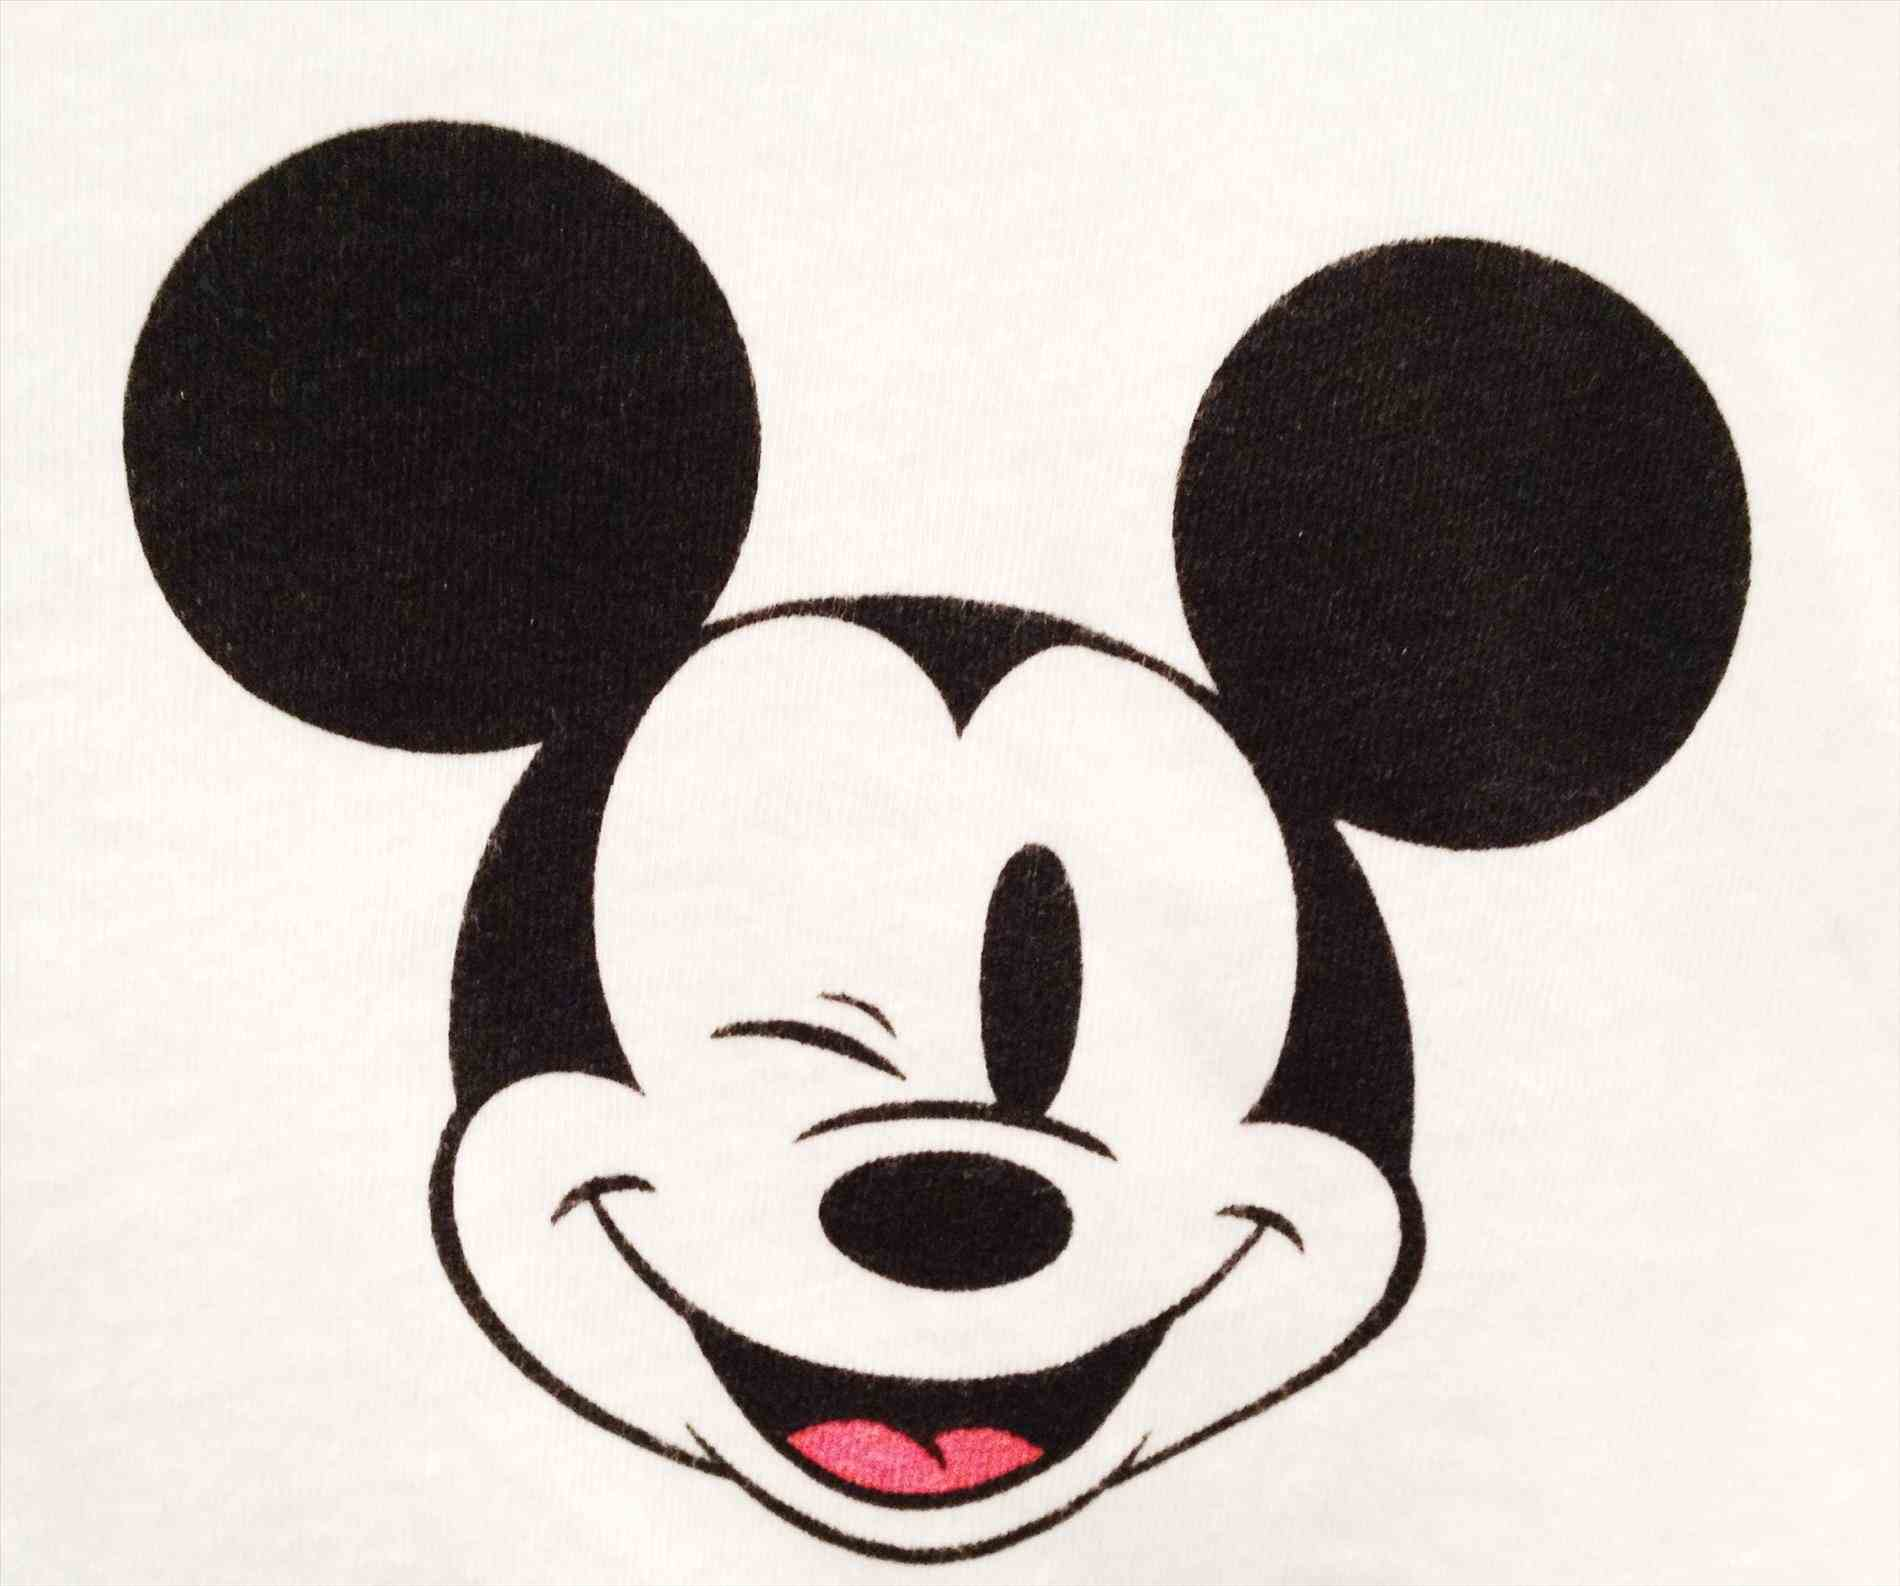 1900x1586 Magical Tattoos Discreet Minnie Mouse Face Tattoos And Utterly